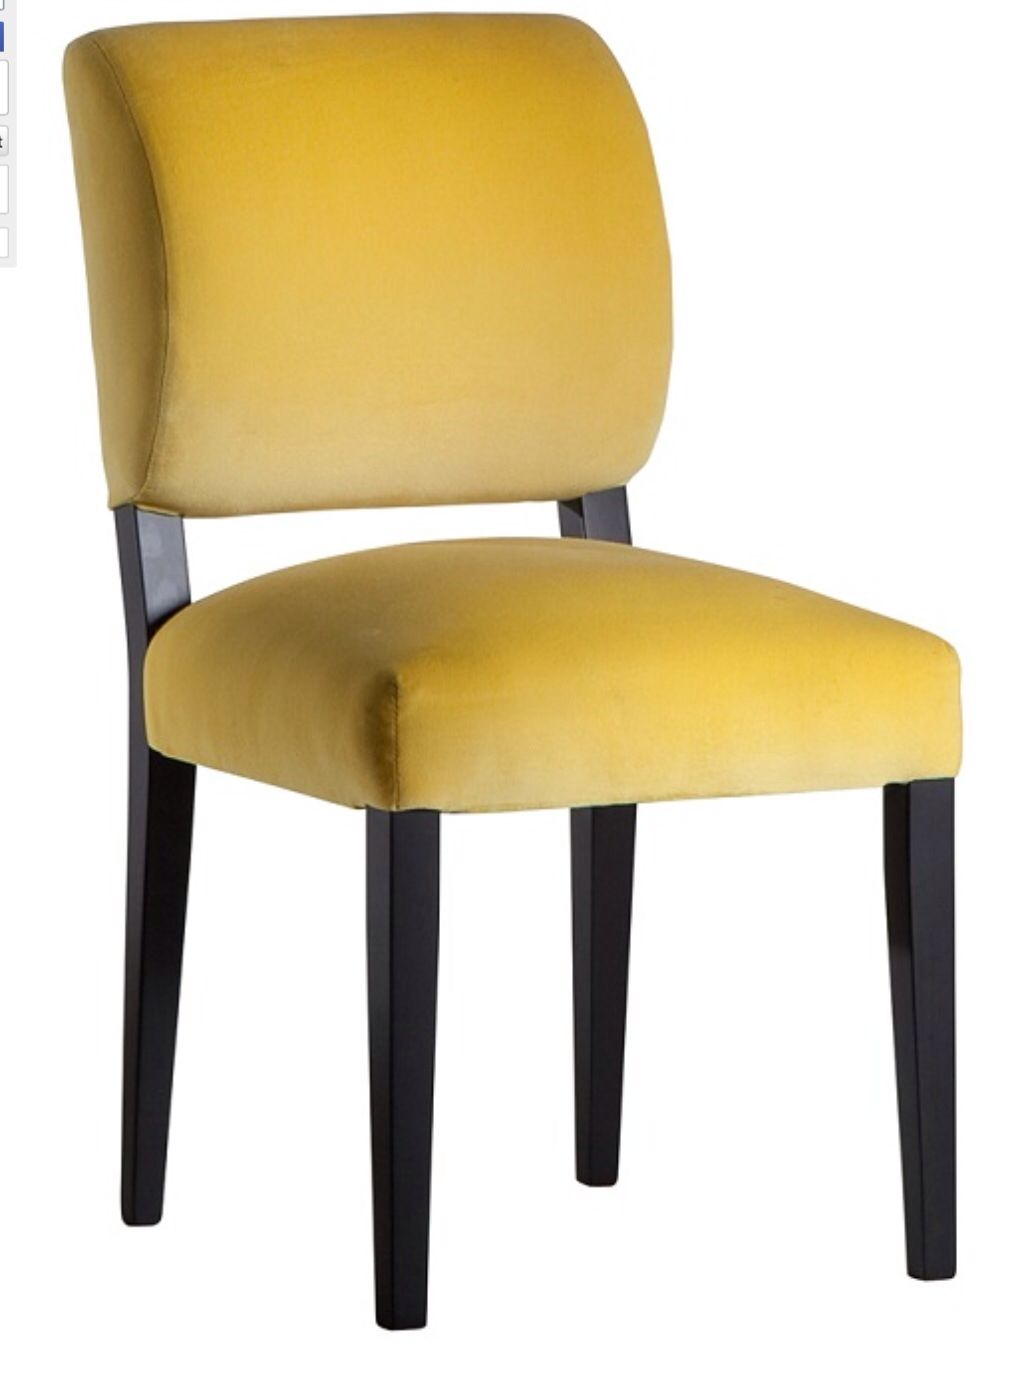 Yellow Upholstered Dining Chair Midcentury Modern Dining Chairs